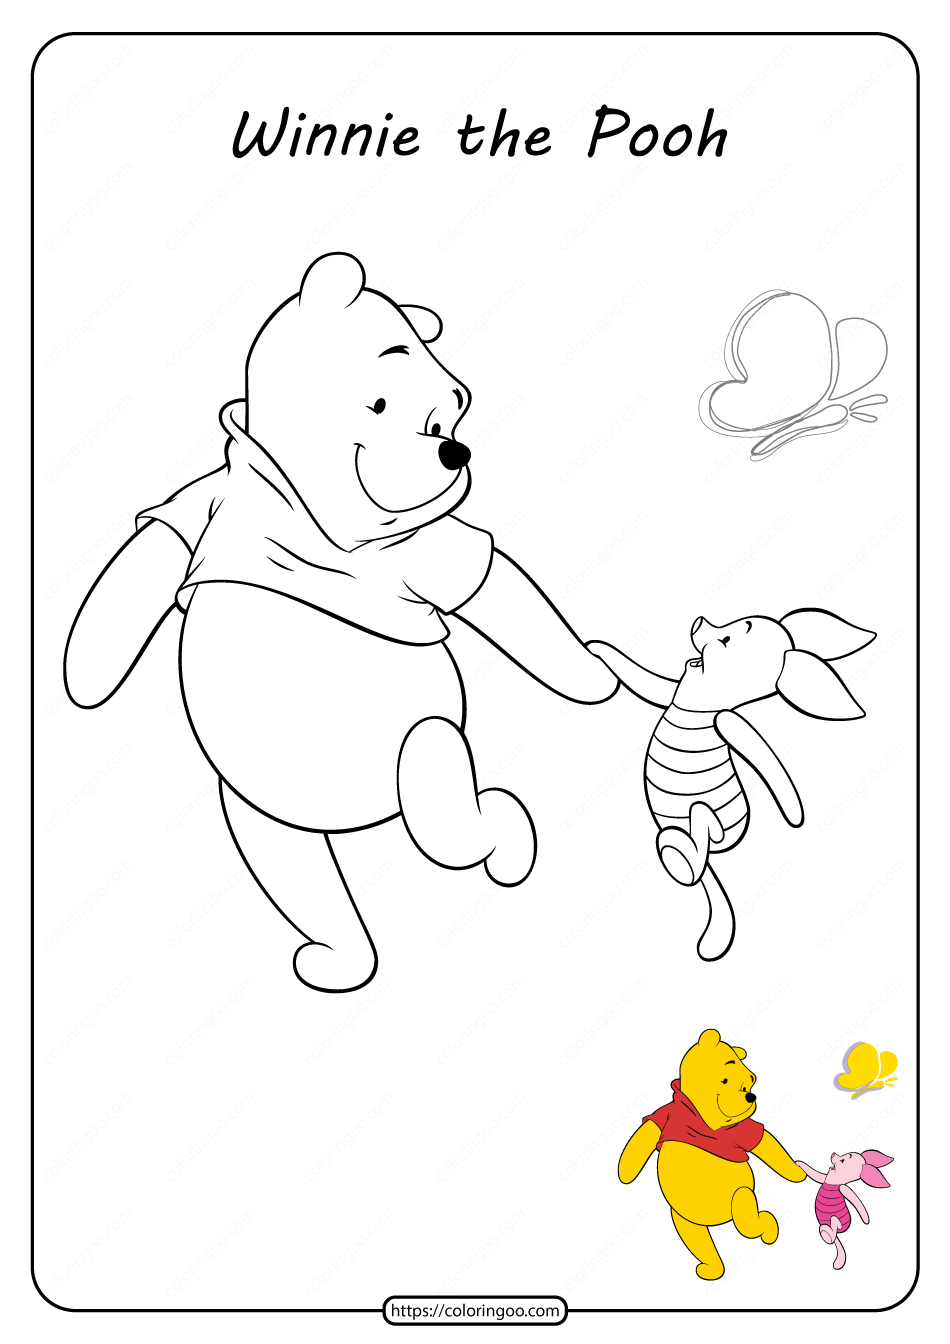 Printable Winnie the Pooh Pdf Coloring Pages 13